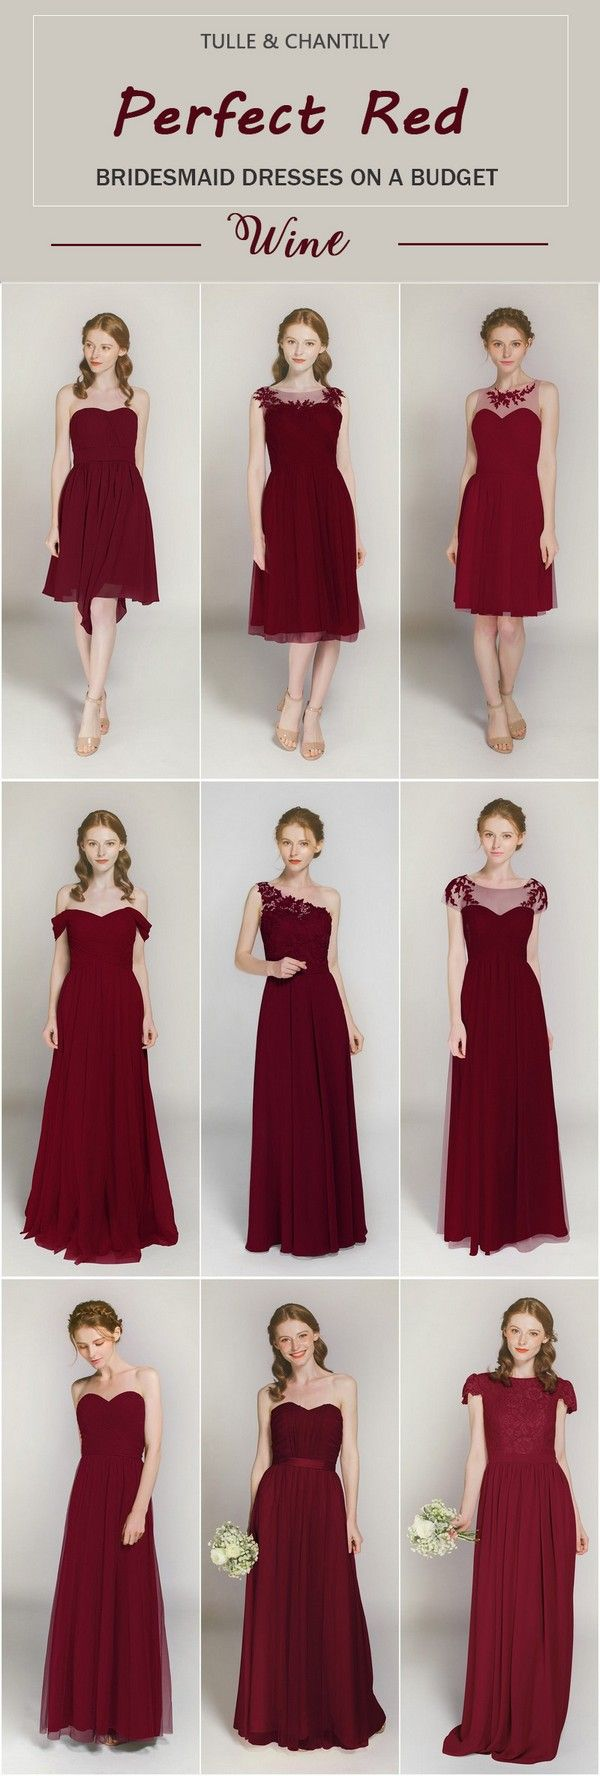 Wine Long Short Bridesmaid Dresses From 89 In Size 2 30 And 100 Color